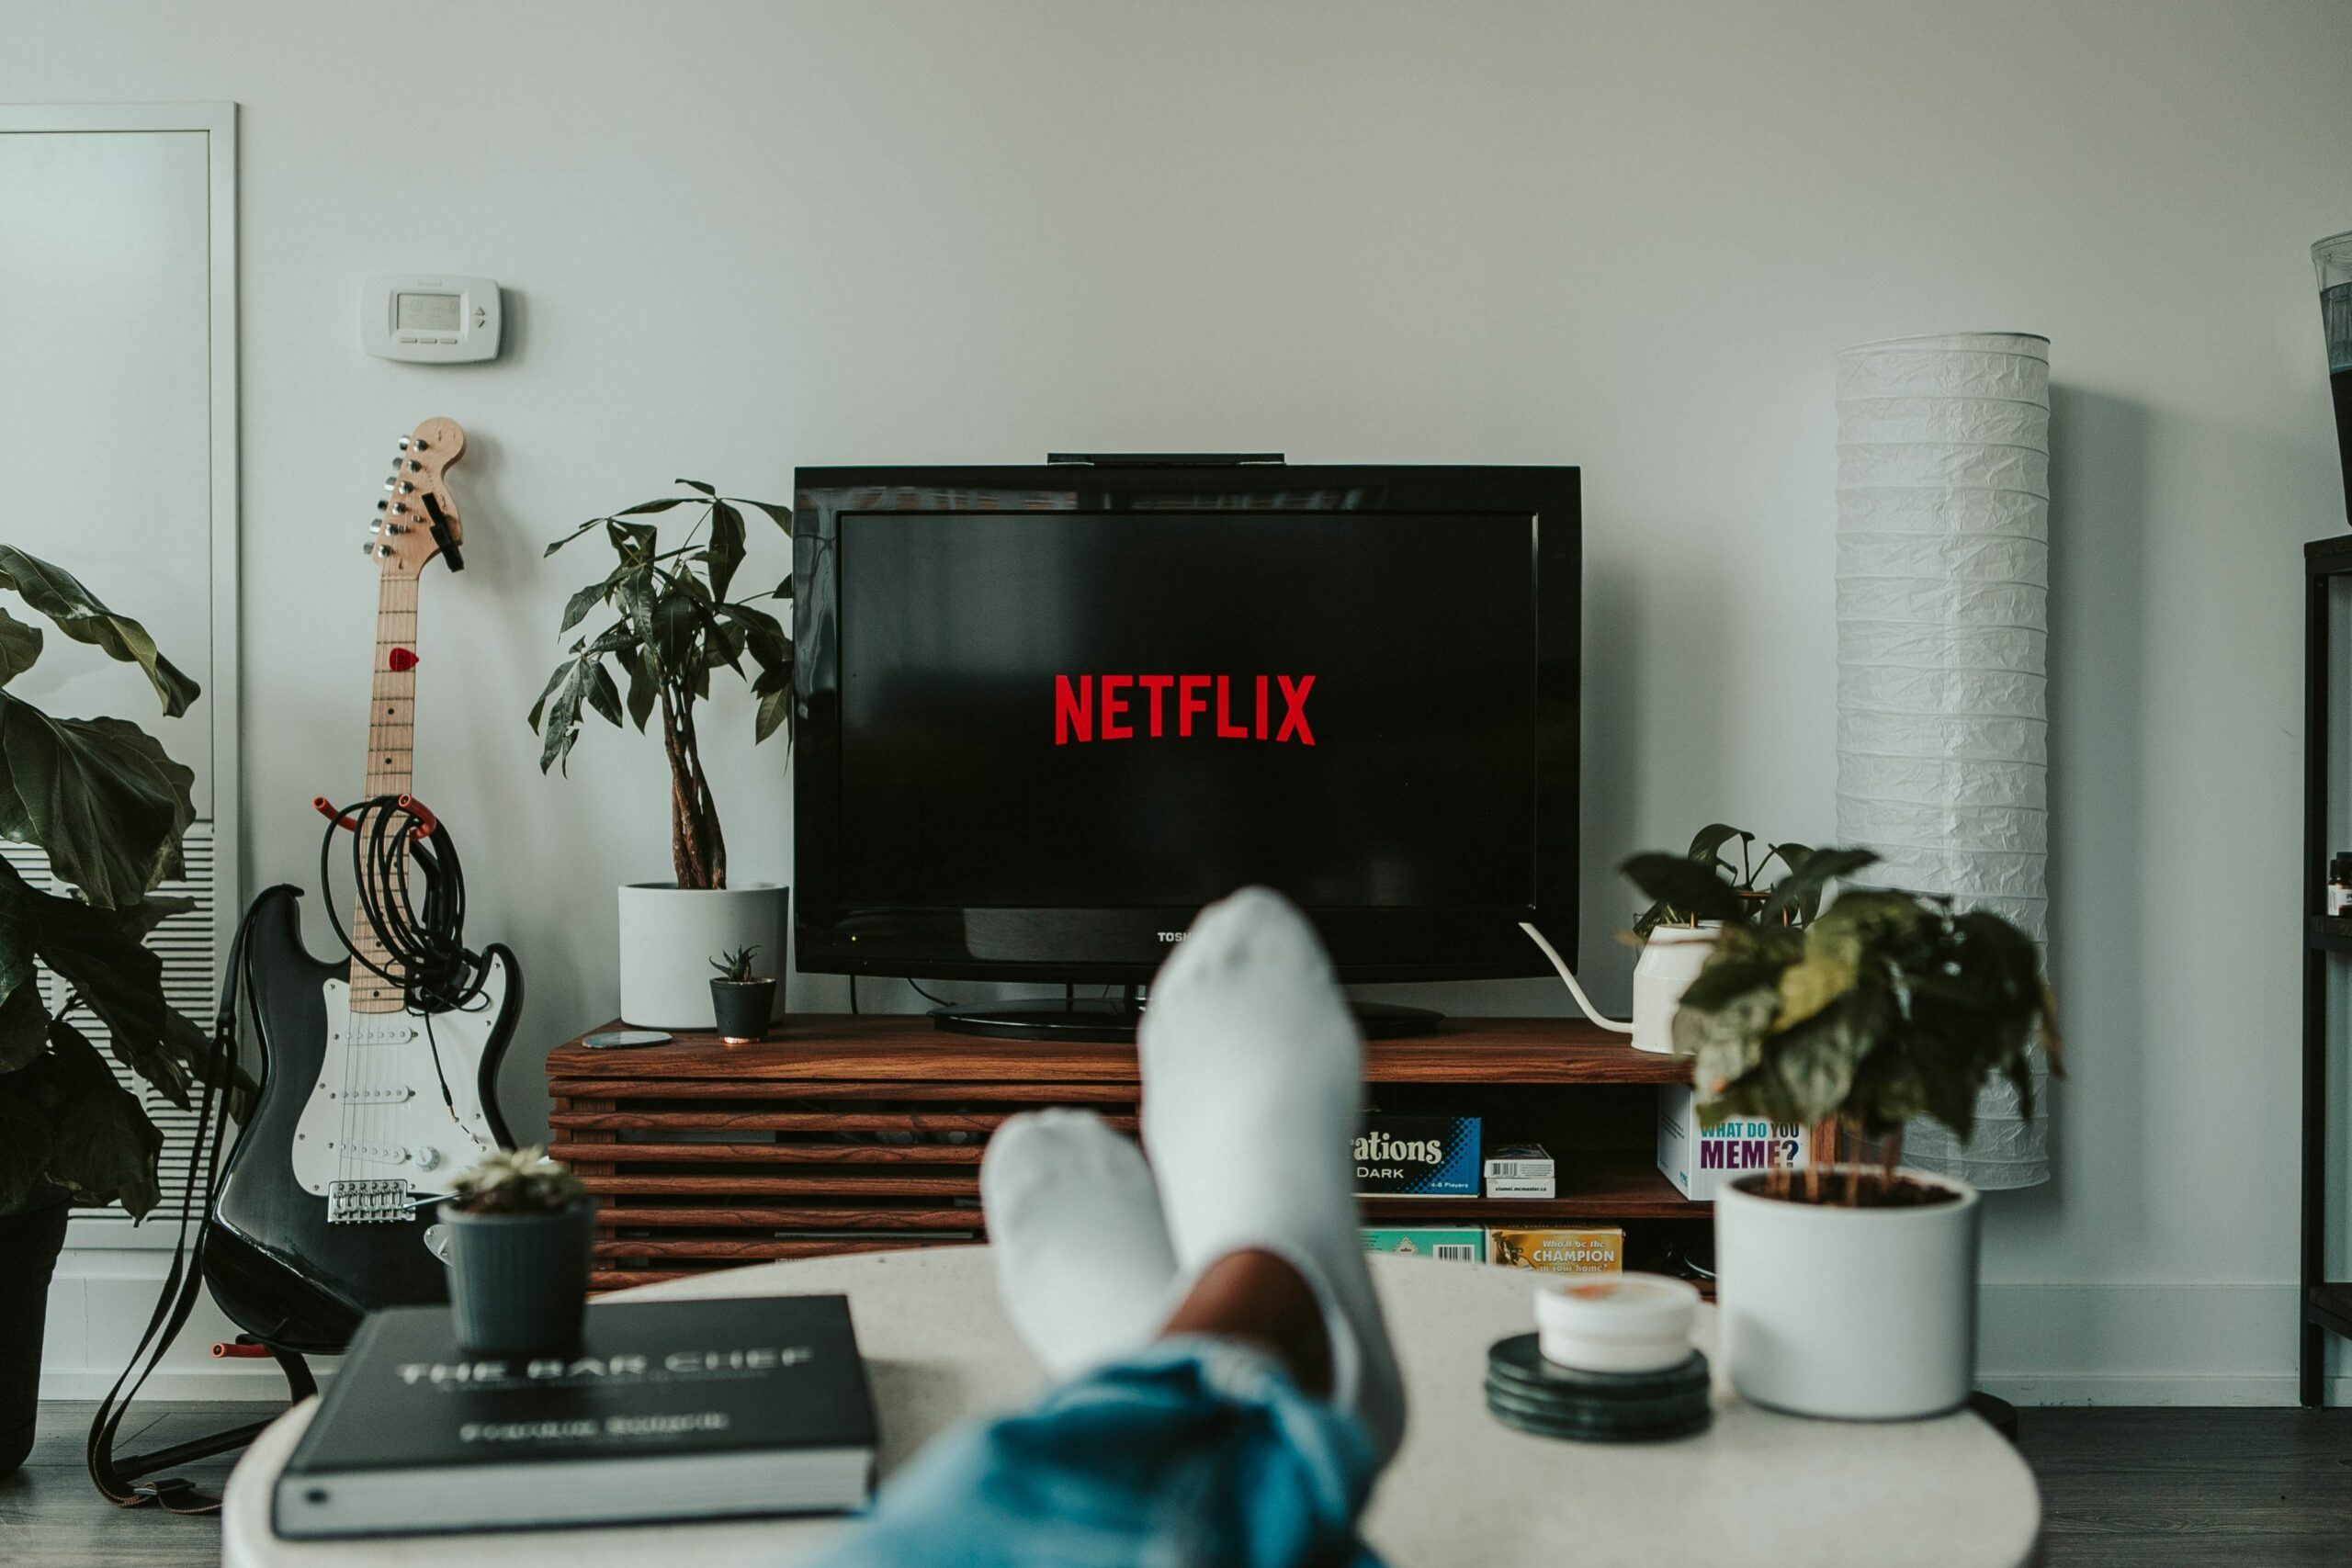 Top 10 movies and shows to watch on Netflix Morocco today